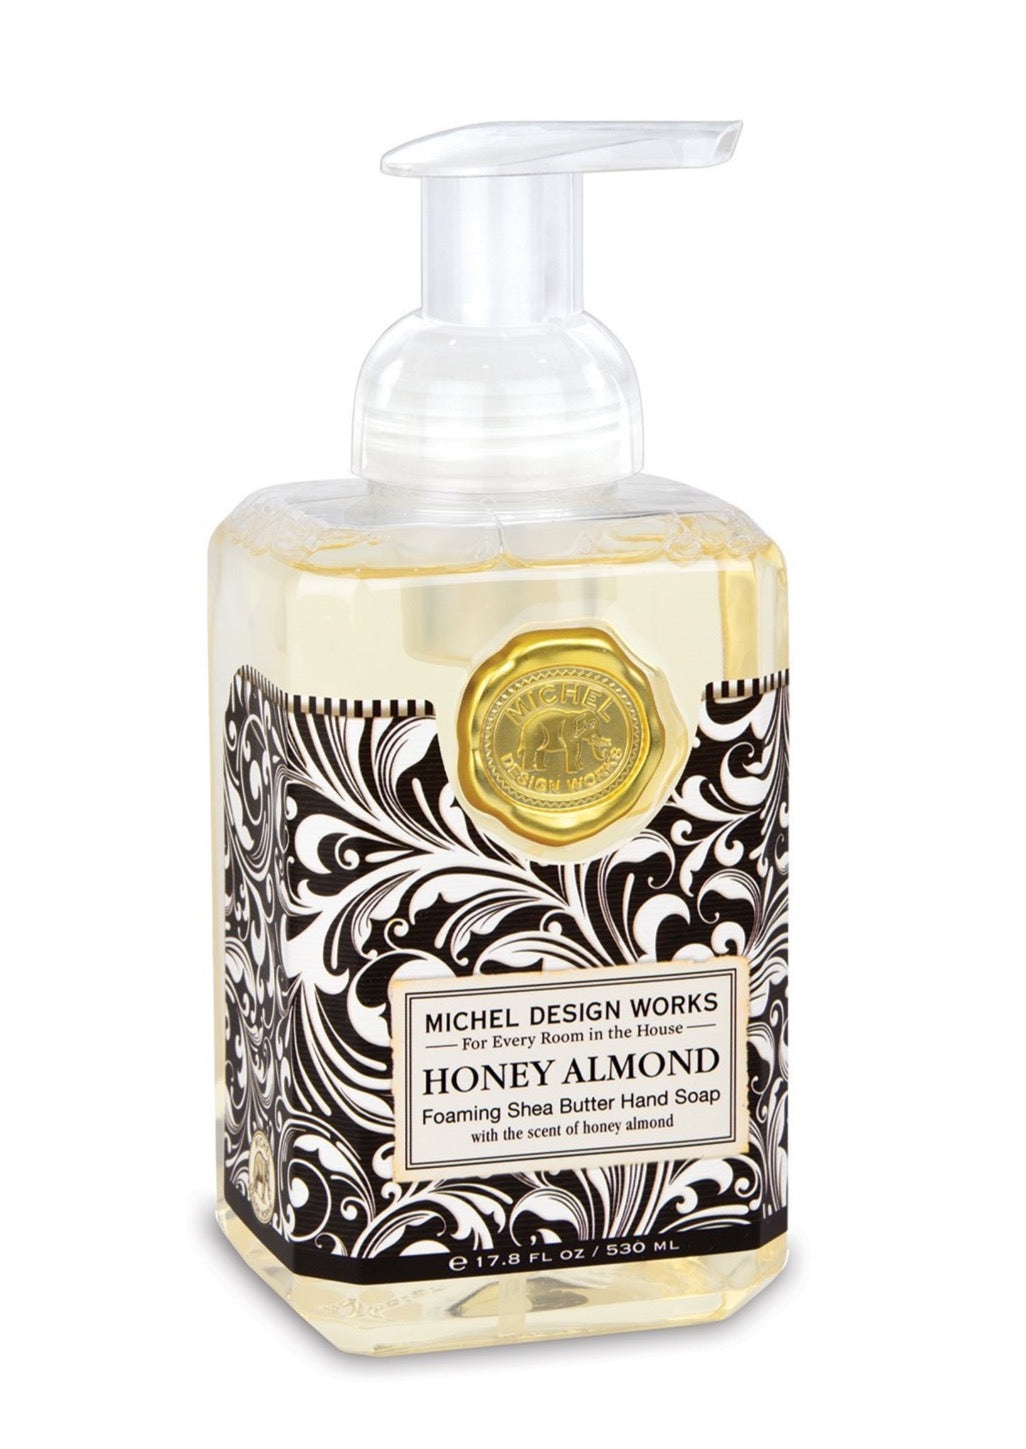 Michel Design Works Foaming Shea Butter Hand Soap